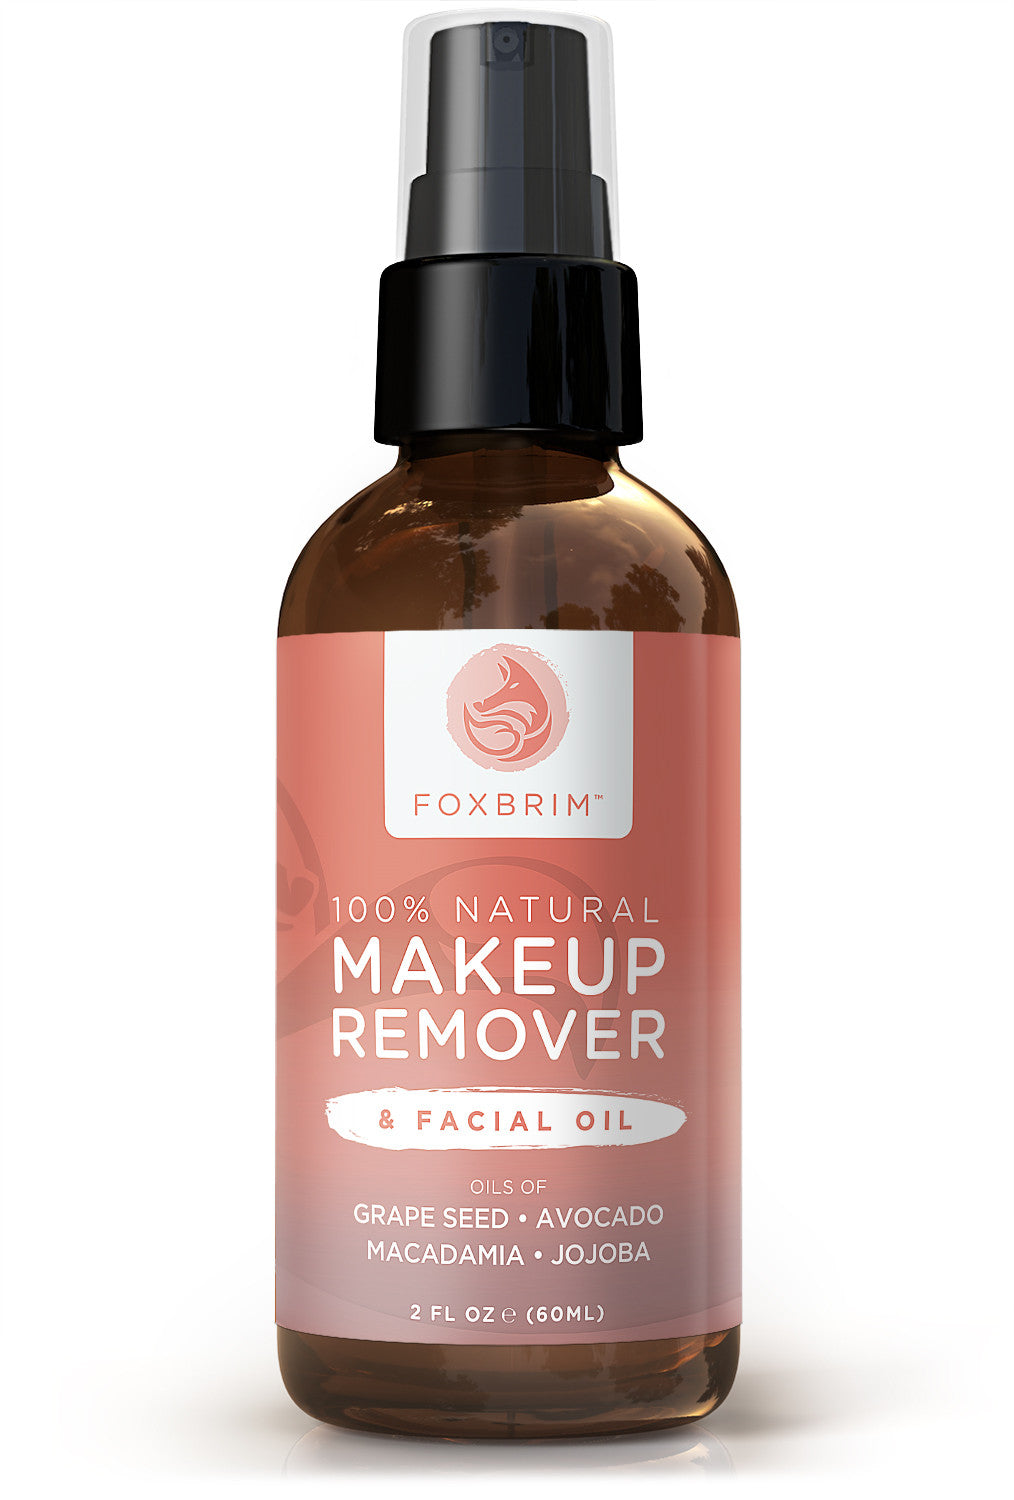 Makeup Removal Important Skin Care Routine: 100% Natural Makeup Remover & Facial Oil